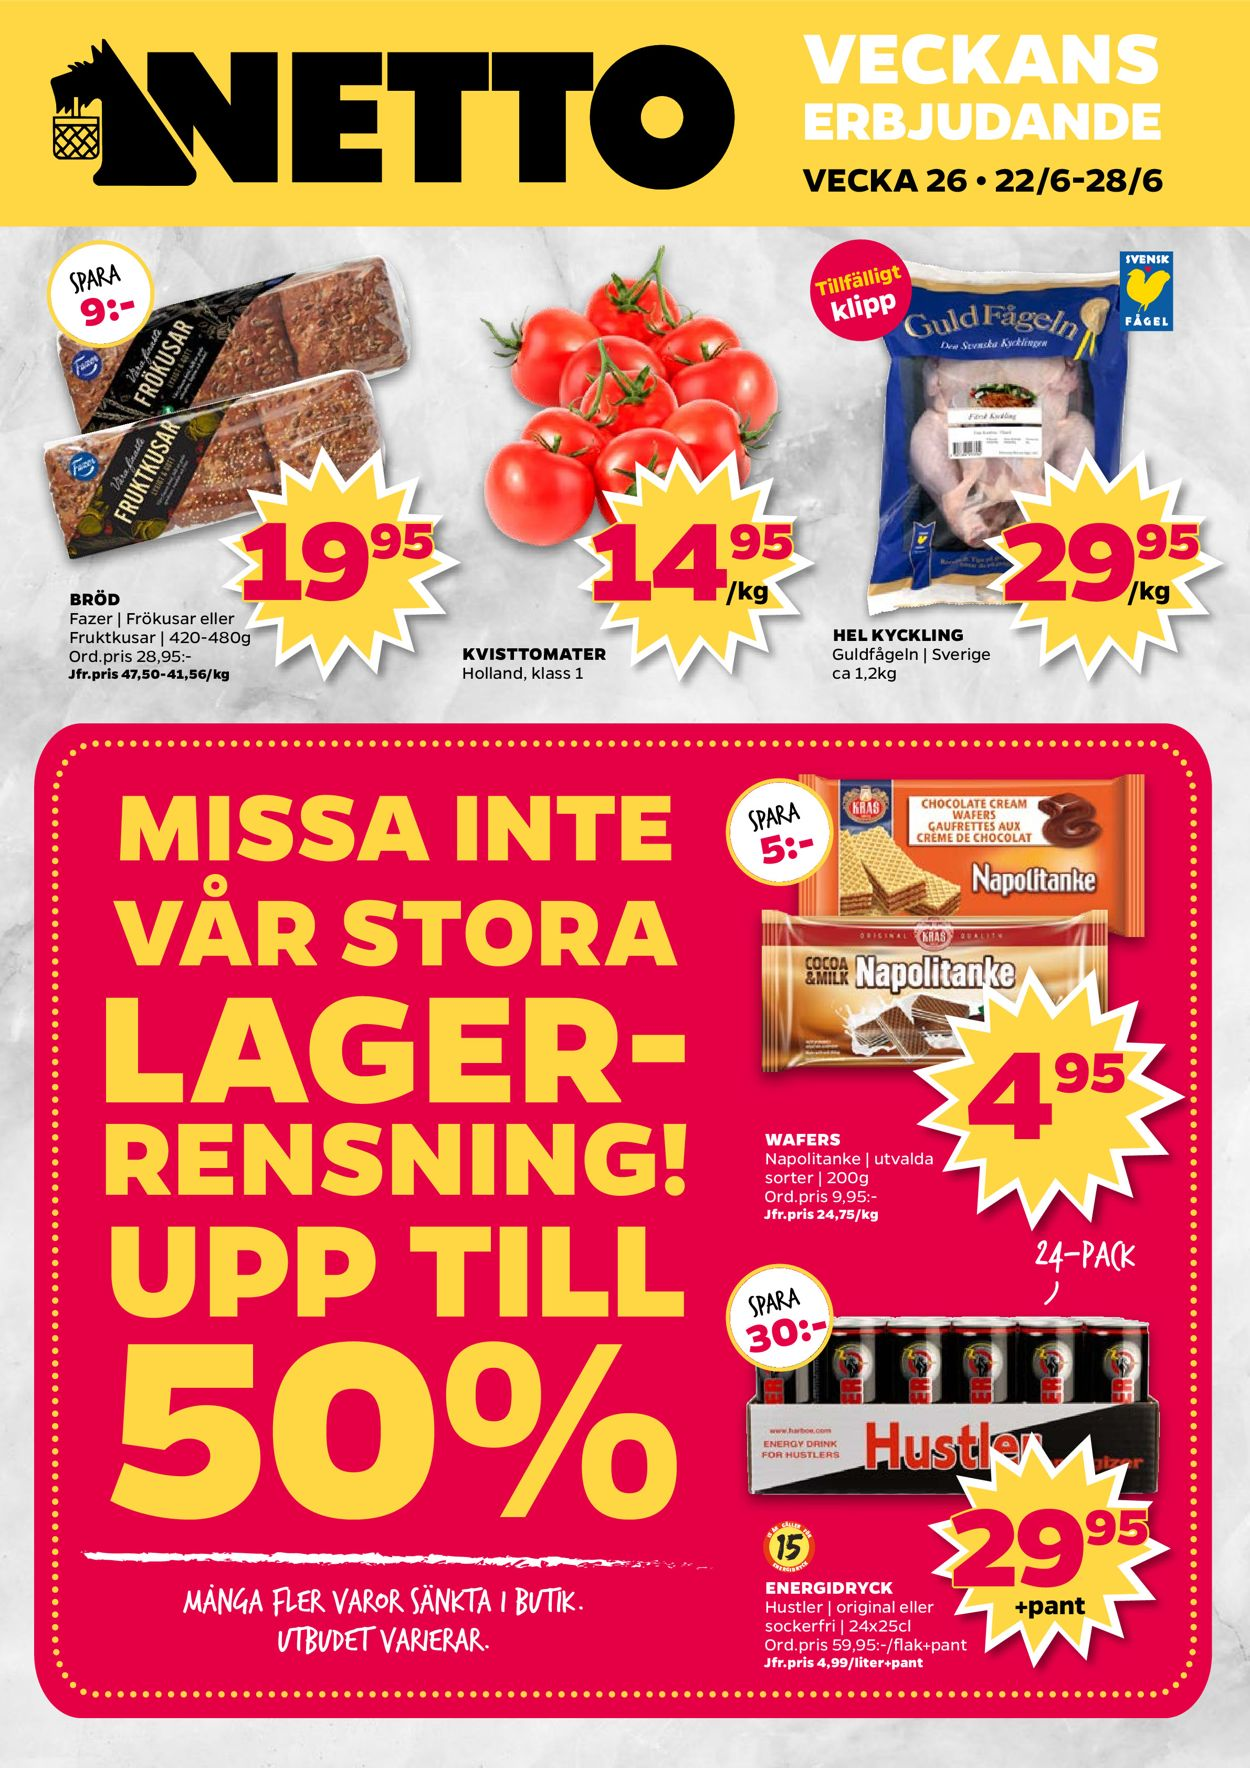 Netto reklamblad